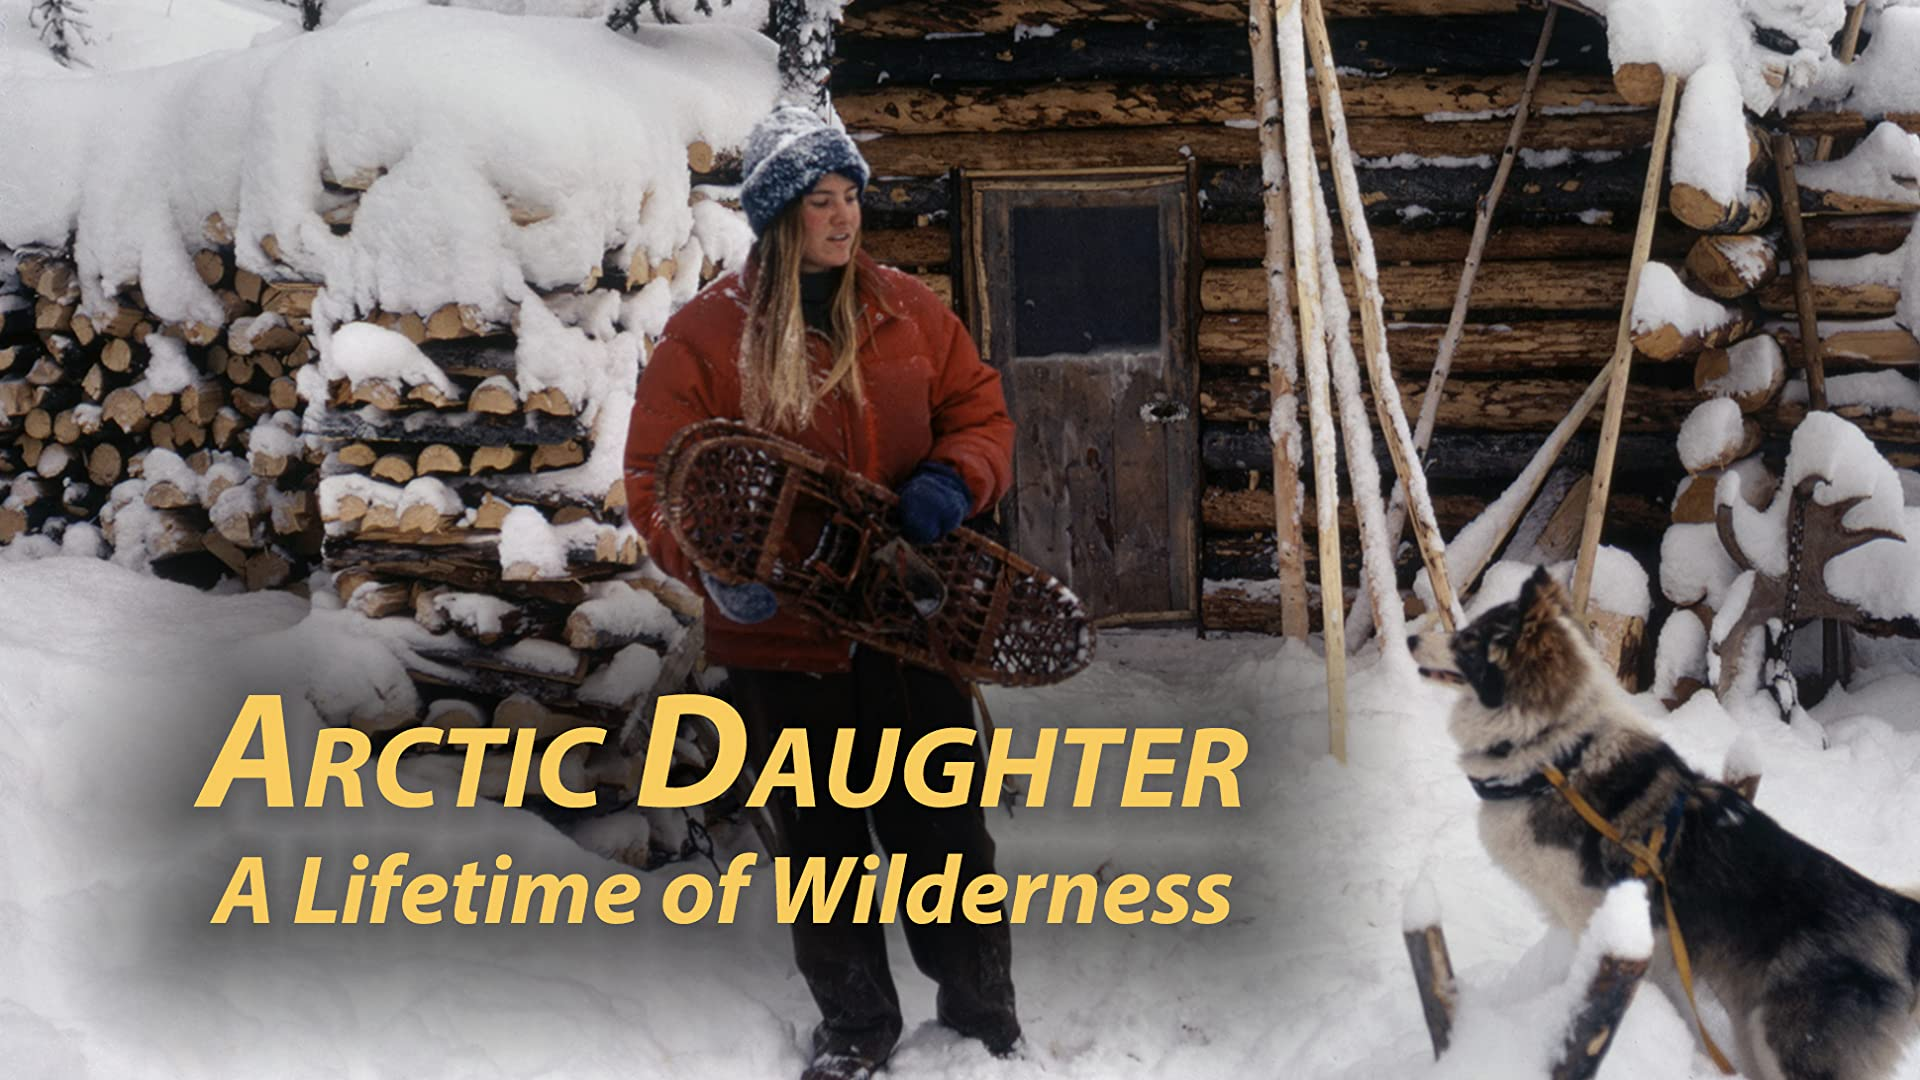 Arctic Daughter: A Lifetime of Wilderness